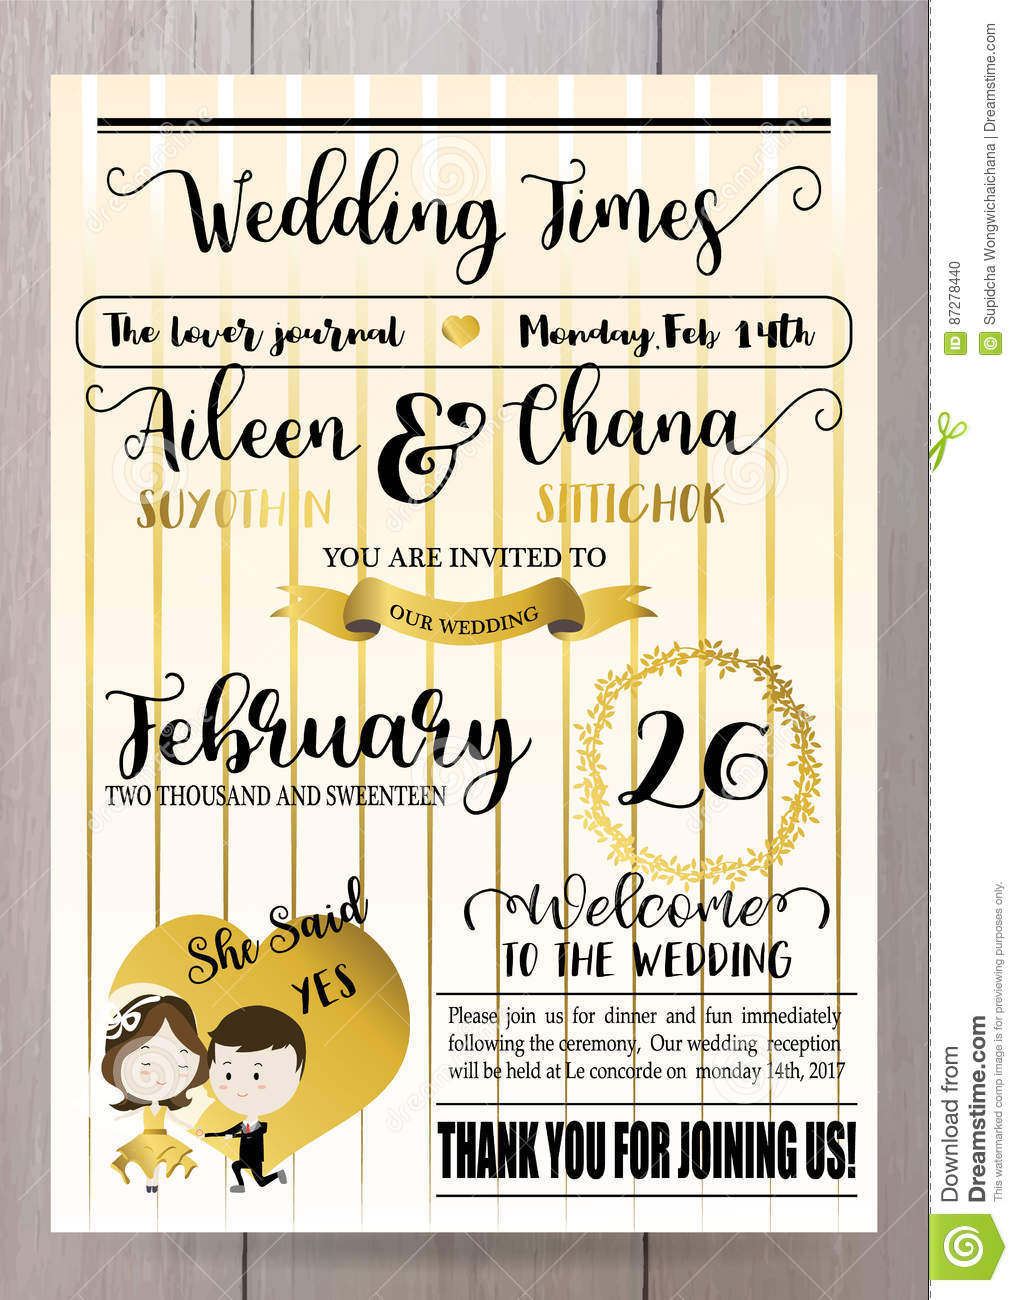 Gold Wedding Template Collection For Bannersflyersplacards Wit